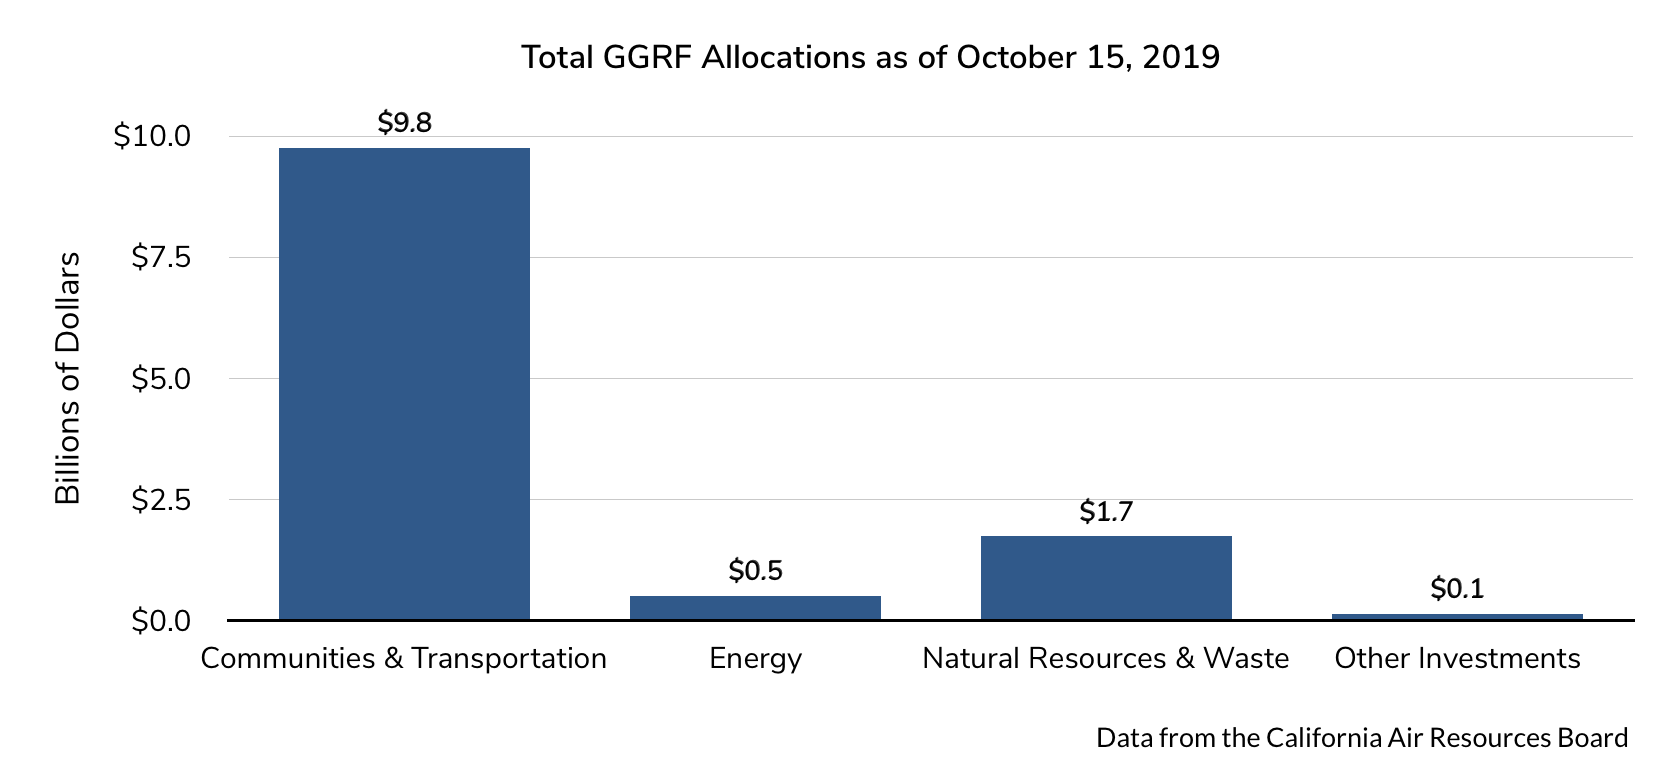 GGRF Allocations to Date